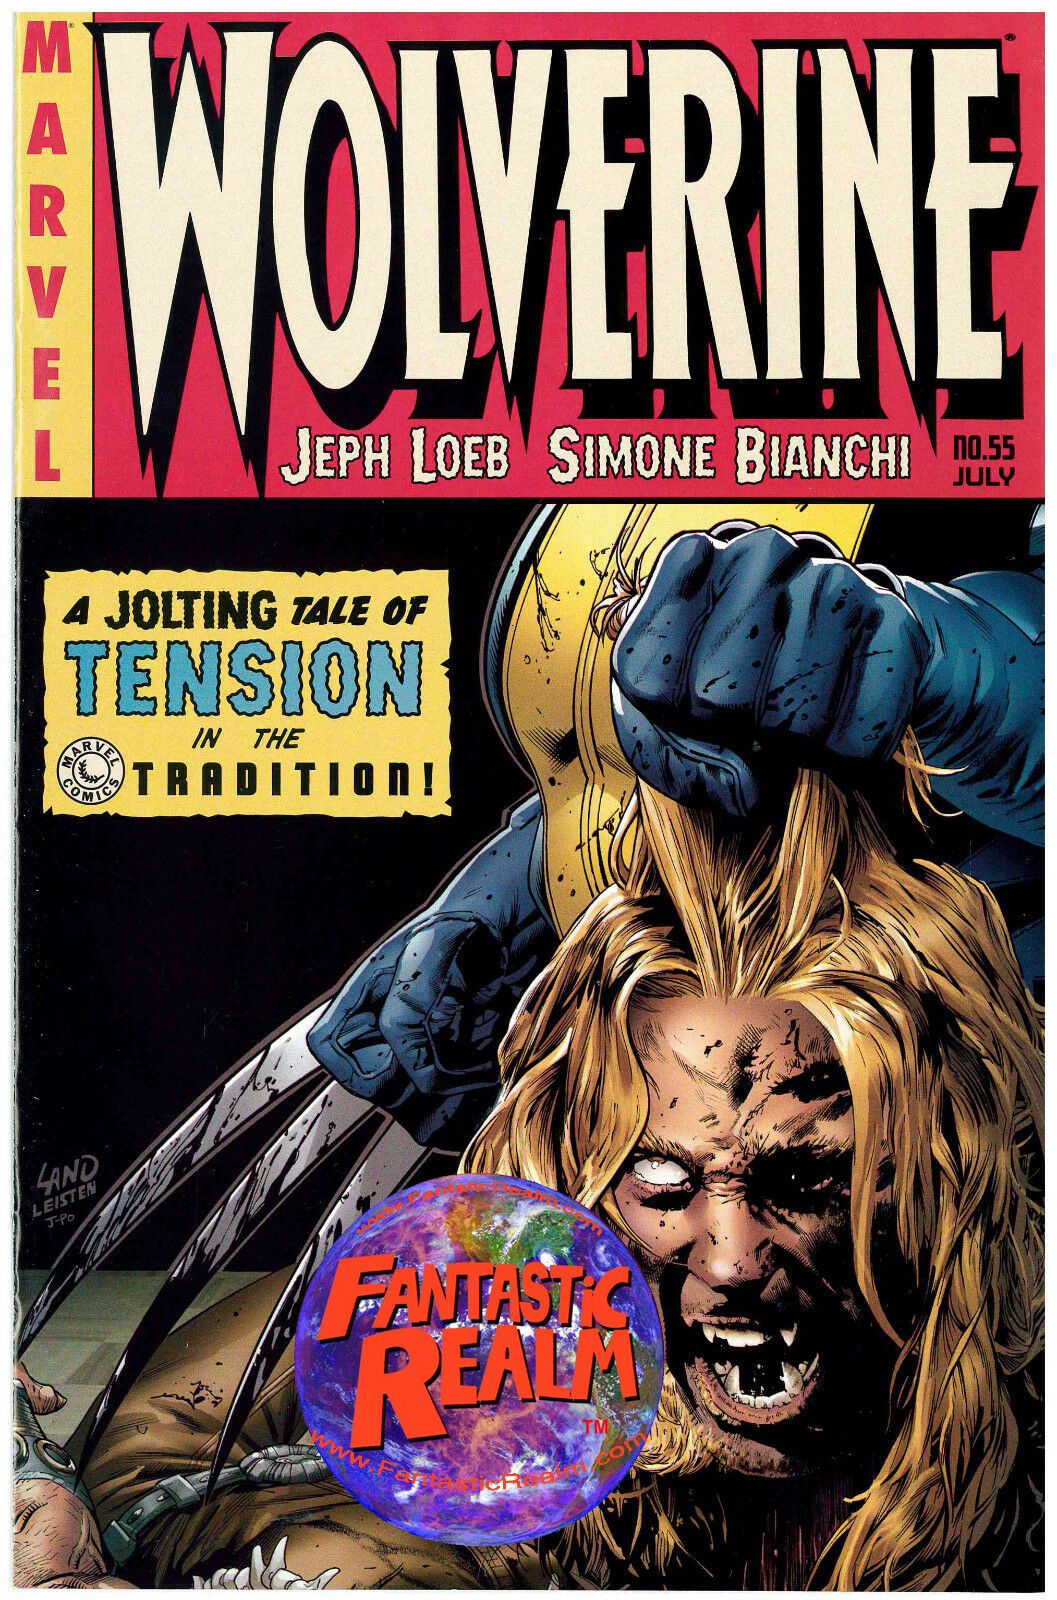 WOLVERINE #55 GREG LAND VARIANT COVER DEATH OF SABERTOOTH MARVEL COMICS